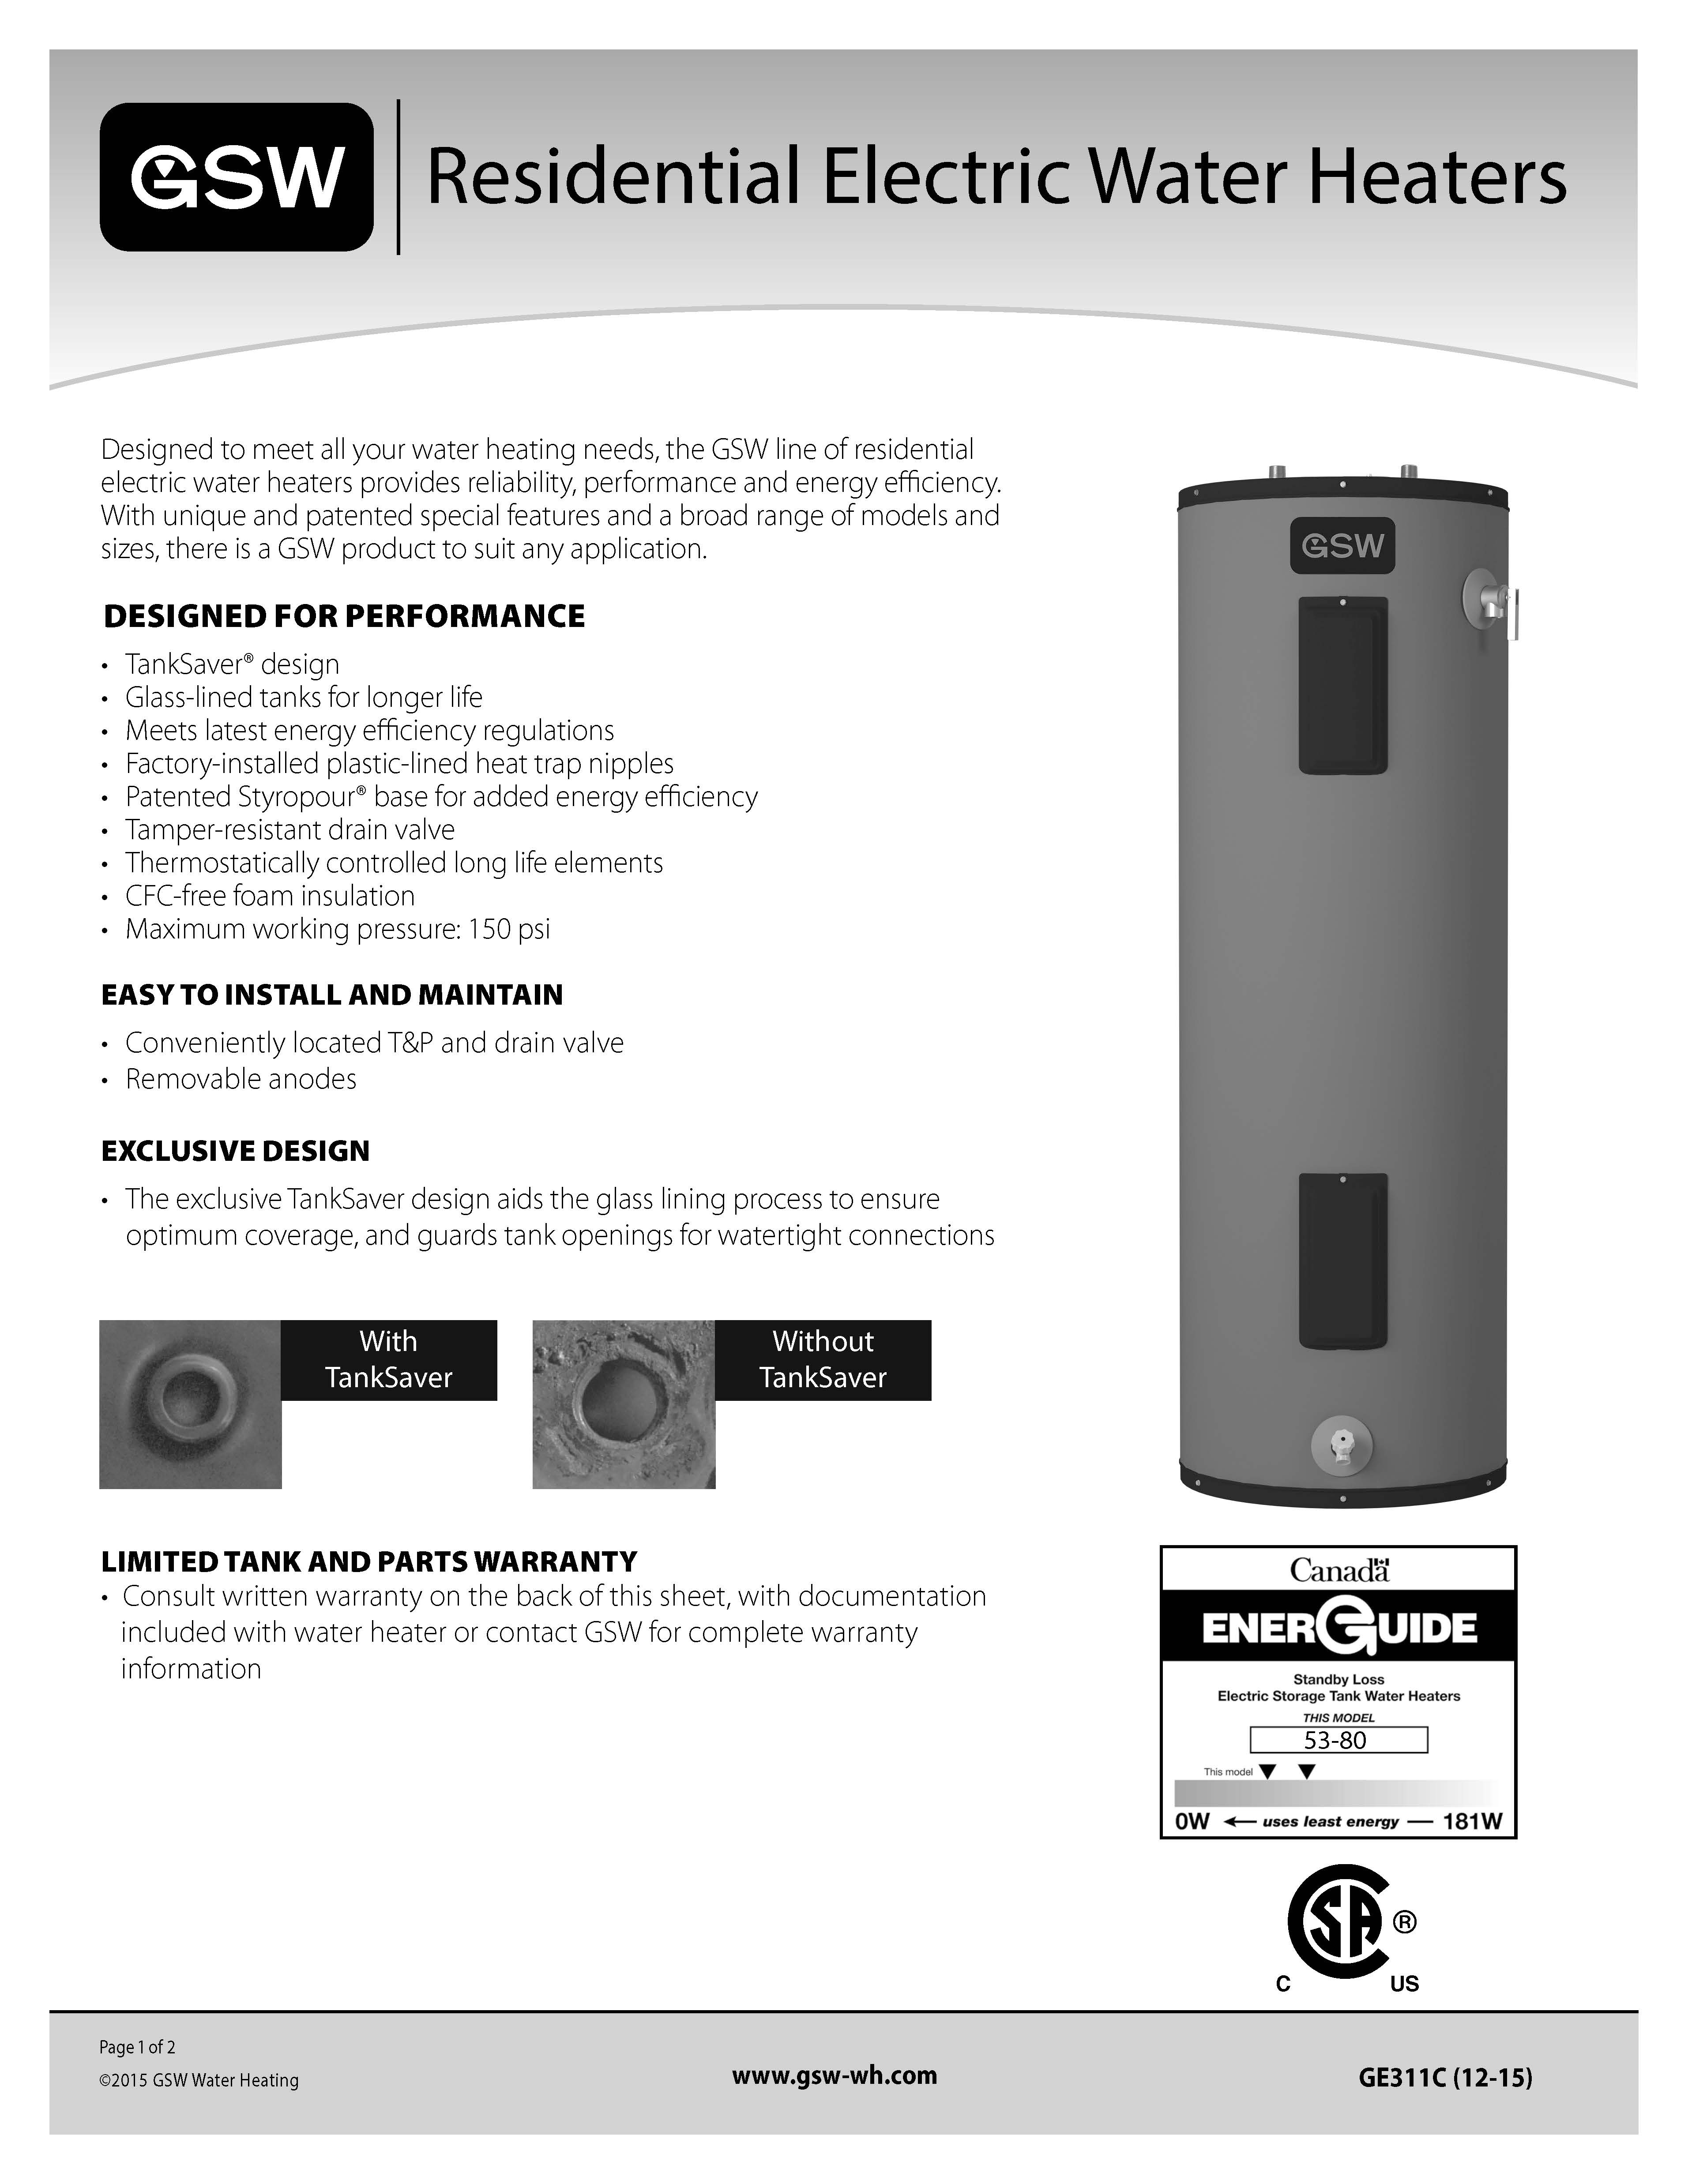 Gsw Residential Electric Heaters Post Views 231